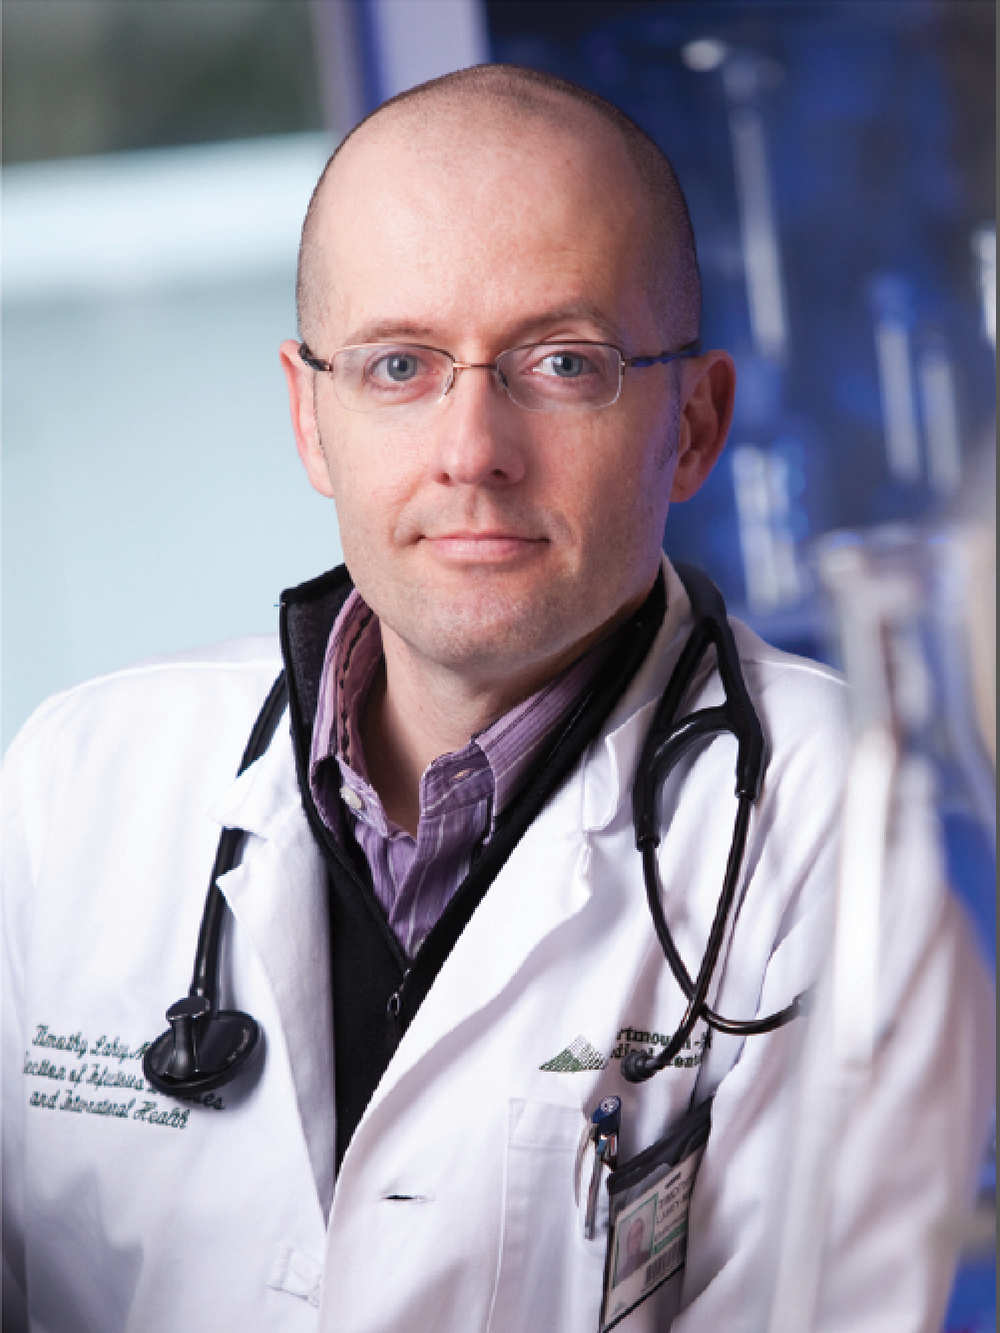 Tim Lahey, MD MMSc   An HIV doc and clinical ethicist, I write about medicine, ethics, and HIV here and in The Atlantic, Scientific American, The Body, Health Affairs blog, The Conversation and The New York Times.